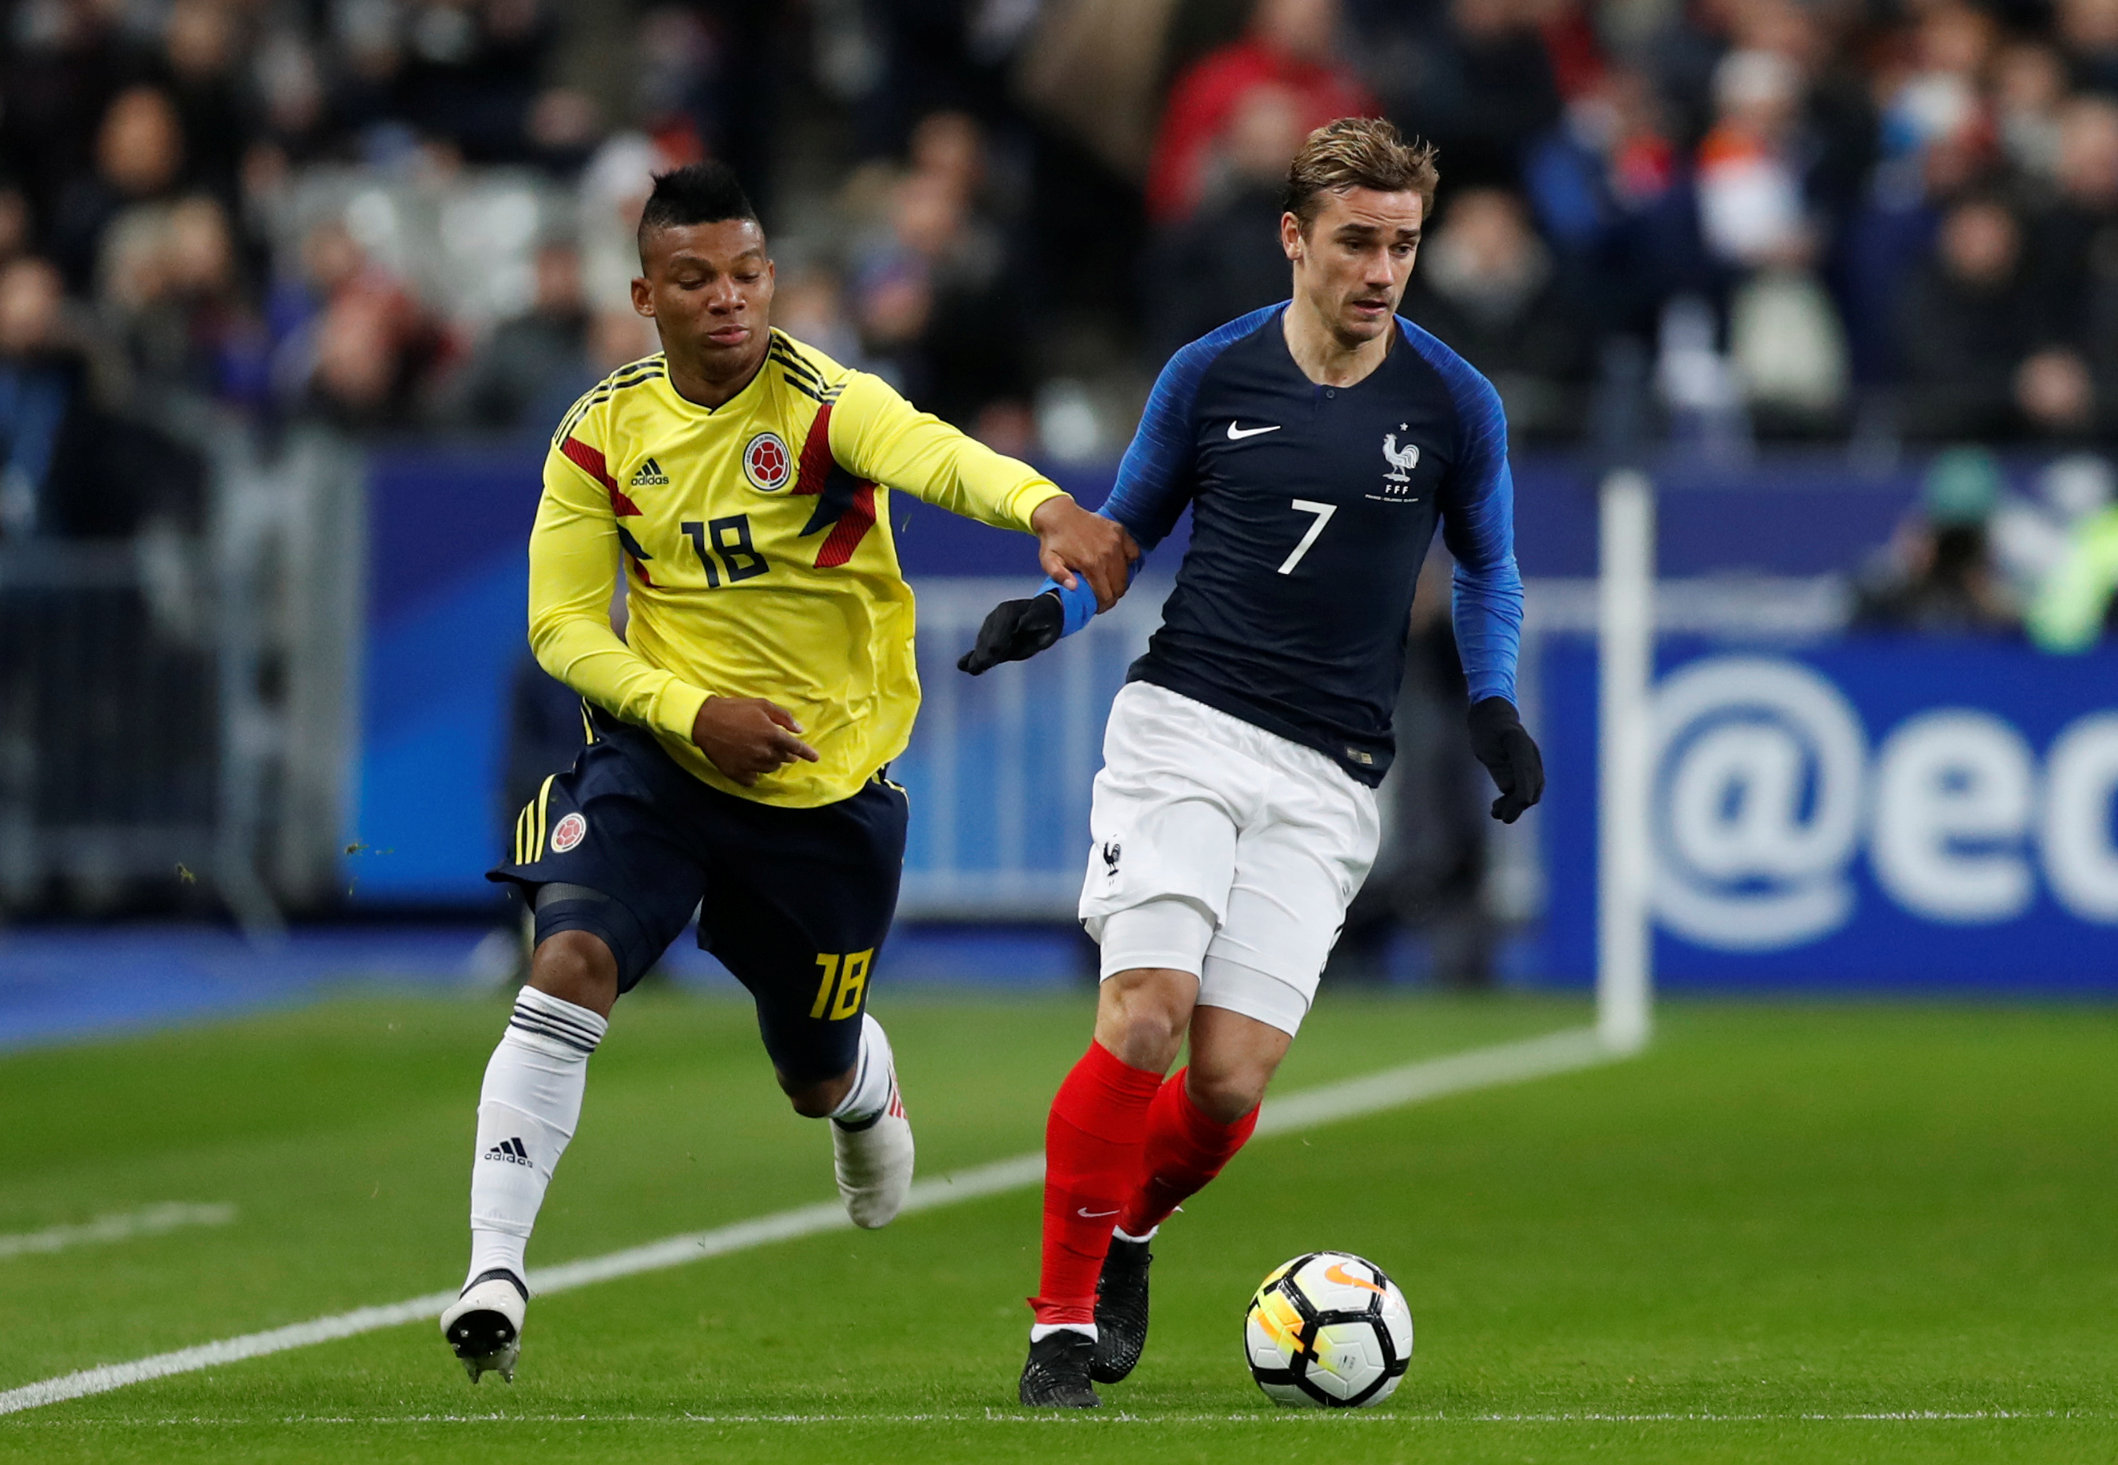 Revivez le match amical france colombie russie 2018 coupe du monde football - Jeux de foot match coupe du monde ...